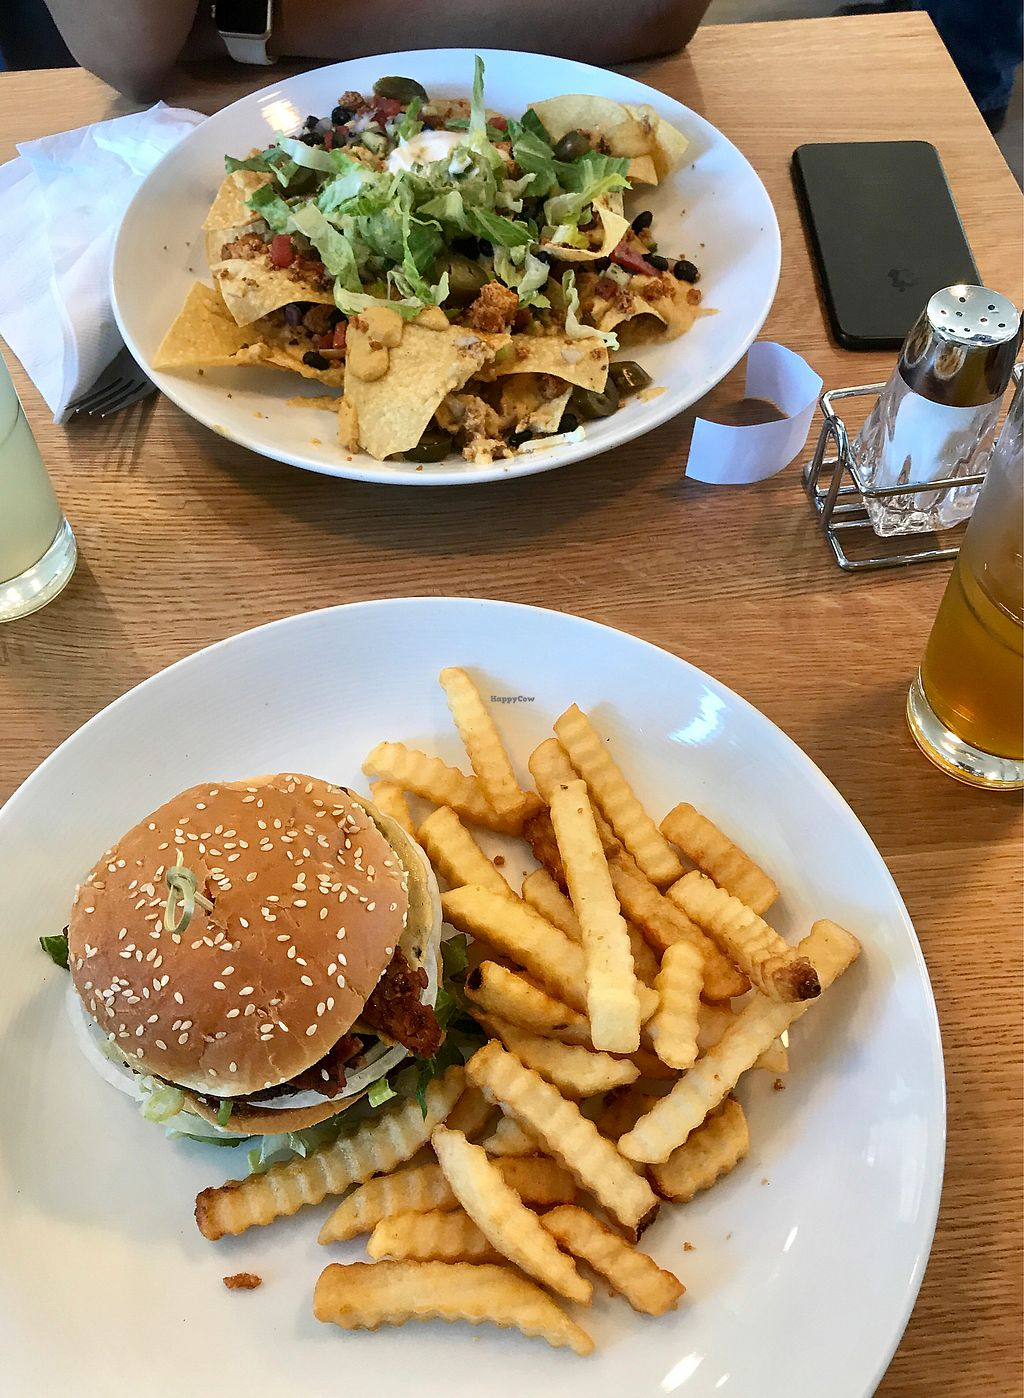 """Photo of J Selby's  by <a href=""""/members/profile/Victoria_Vegan"""">Victoria_Vegan</a> <br/>Dirty Secret w/ Tempeh Bacon & Nachos  <br/> August 2, 2017  - <a href='/contact/abuse/image/90026/288005'>Report</a>"""